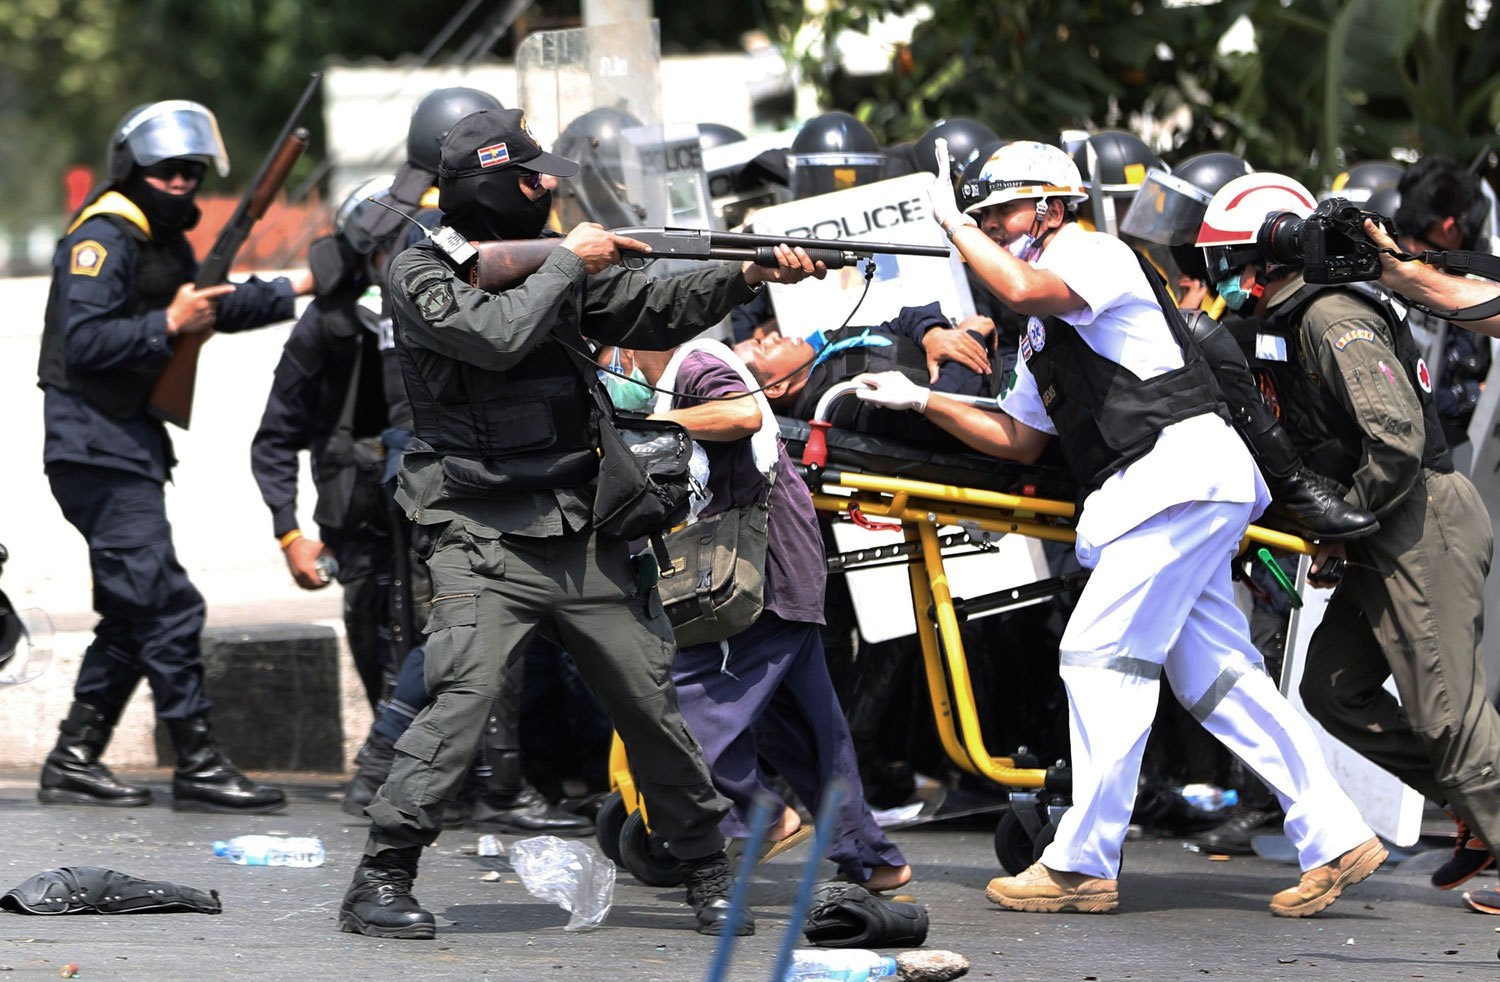 An armed Thai police officer aims his rubber bullet rifle as medical team carry a injured person on a stretcher during a clash between police force and anti-government protesters in Bangkok, on Feb. 18, 2014.